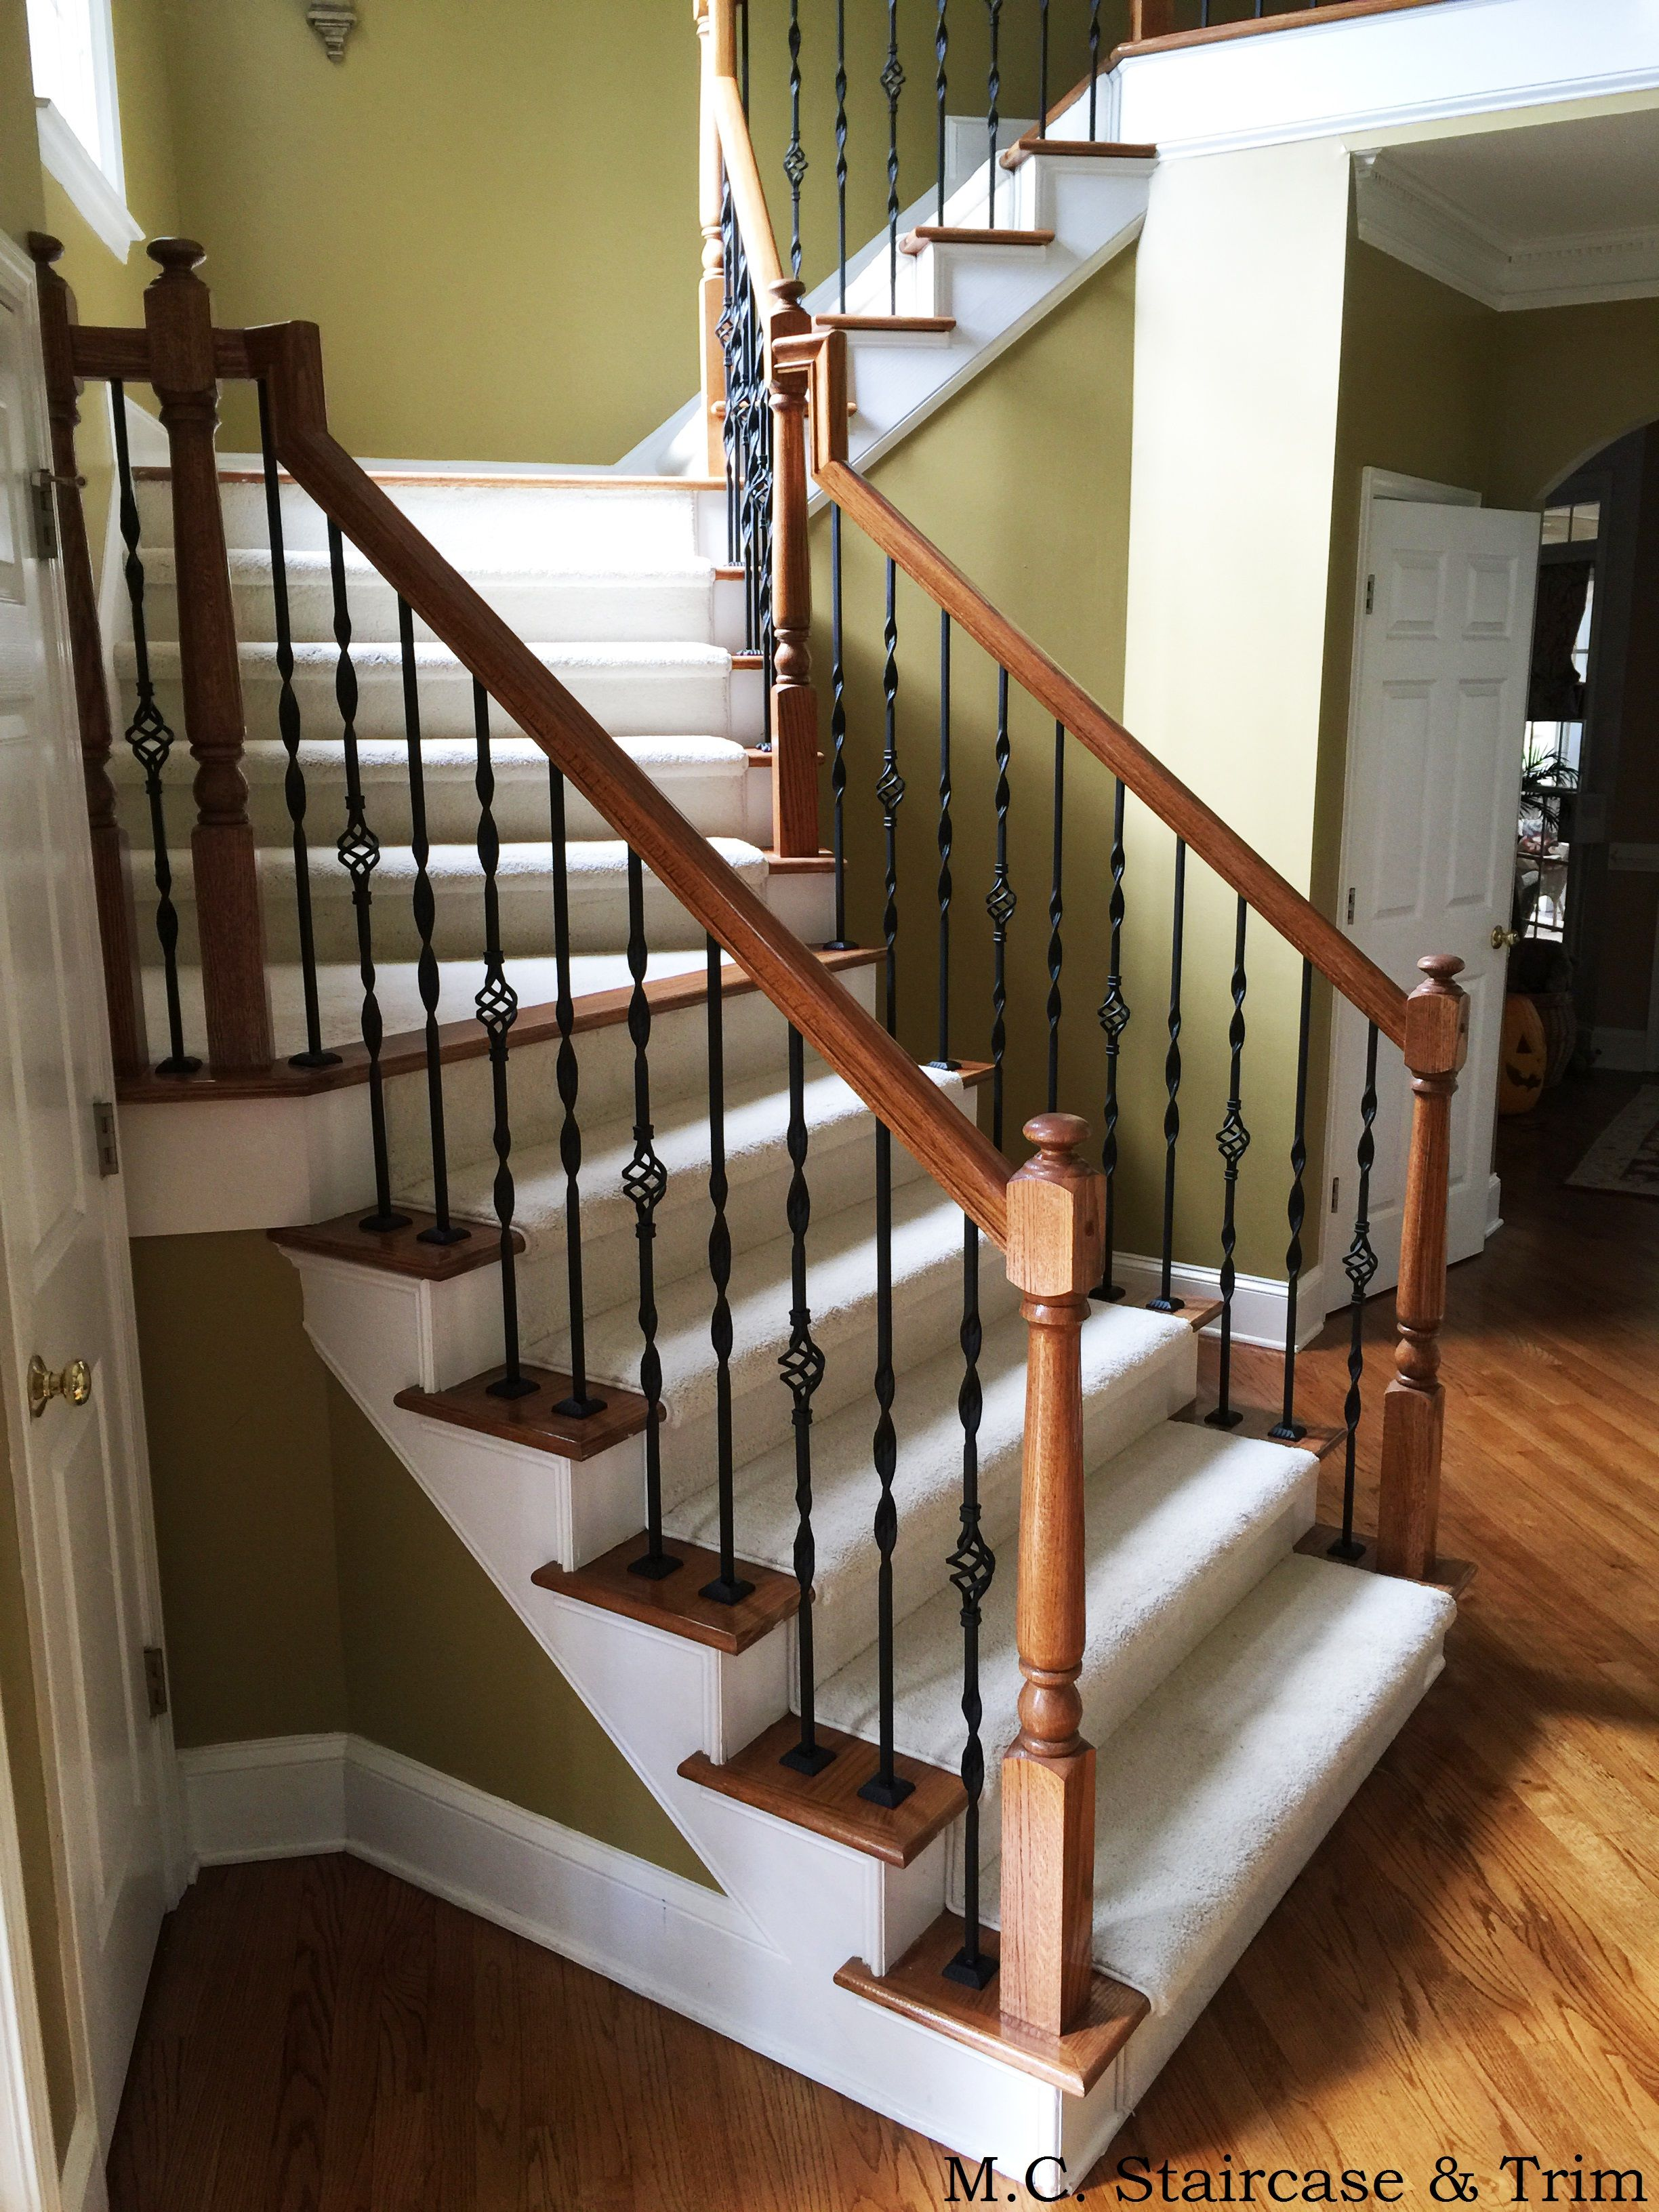 Best After The Iron Baluster Upgrade From M C Staircase Trim 400 x 300